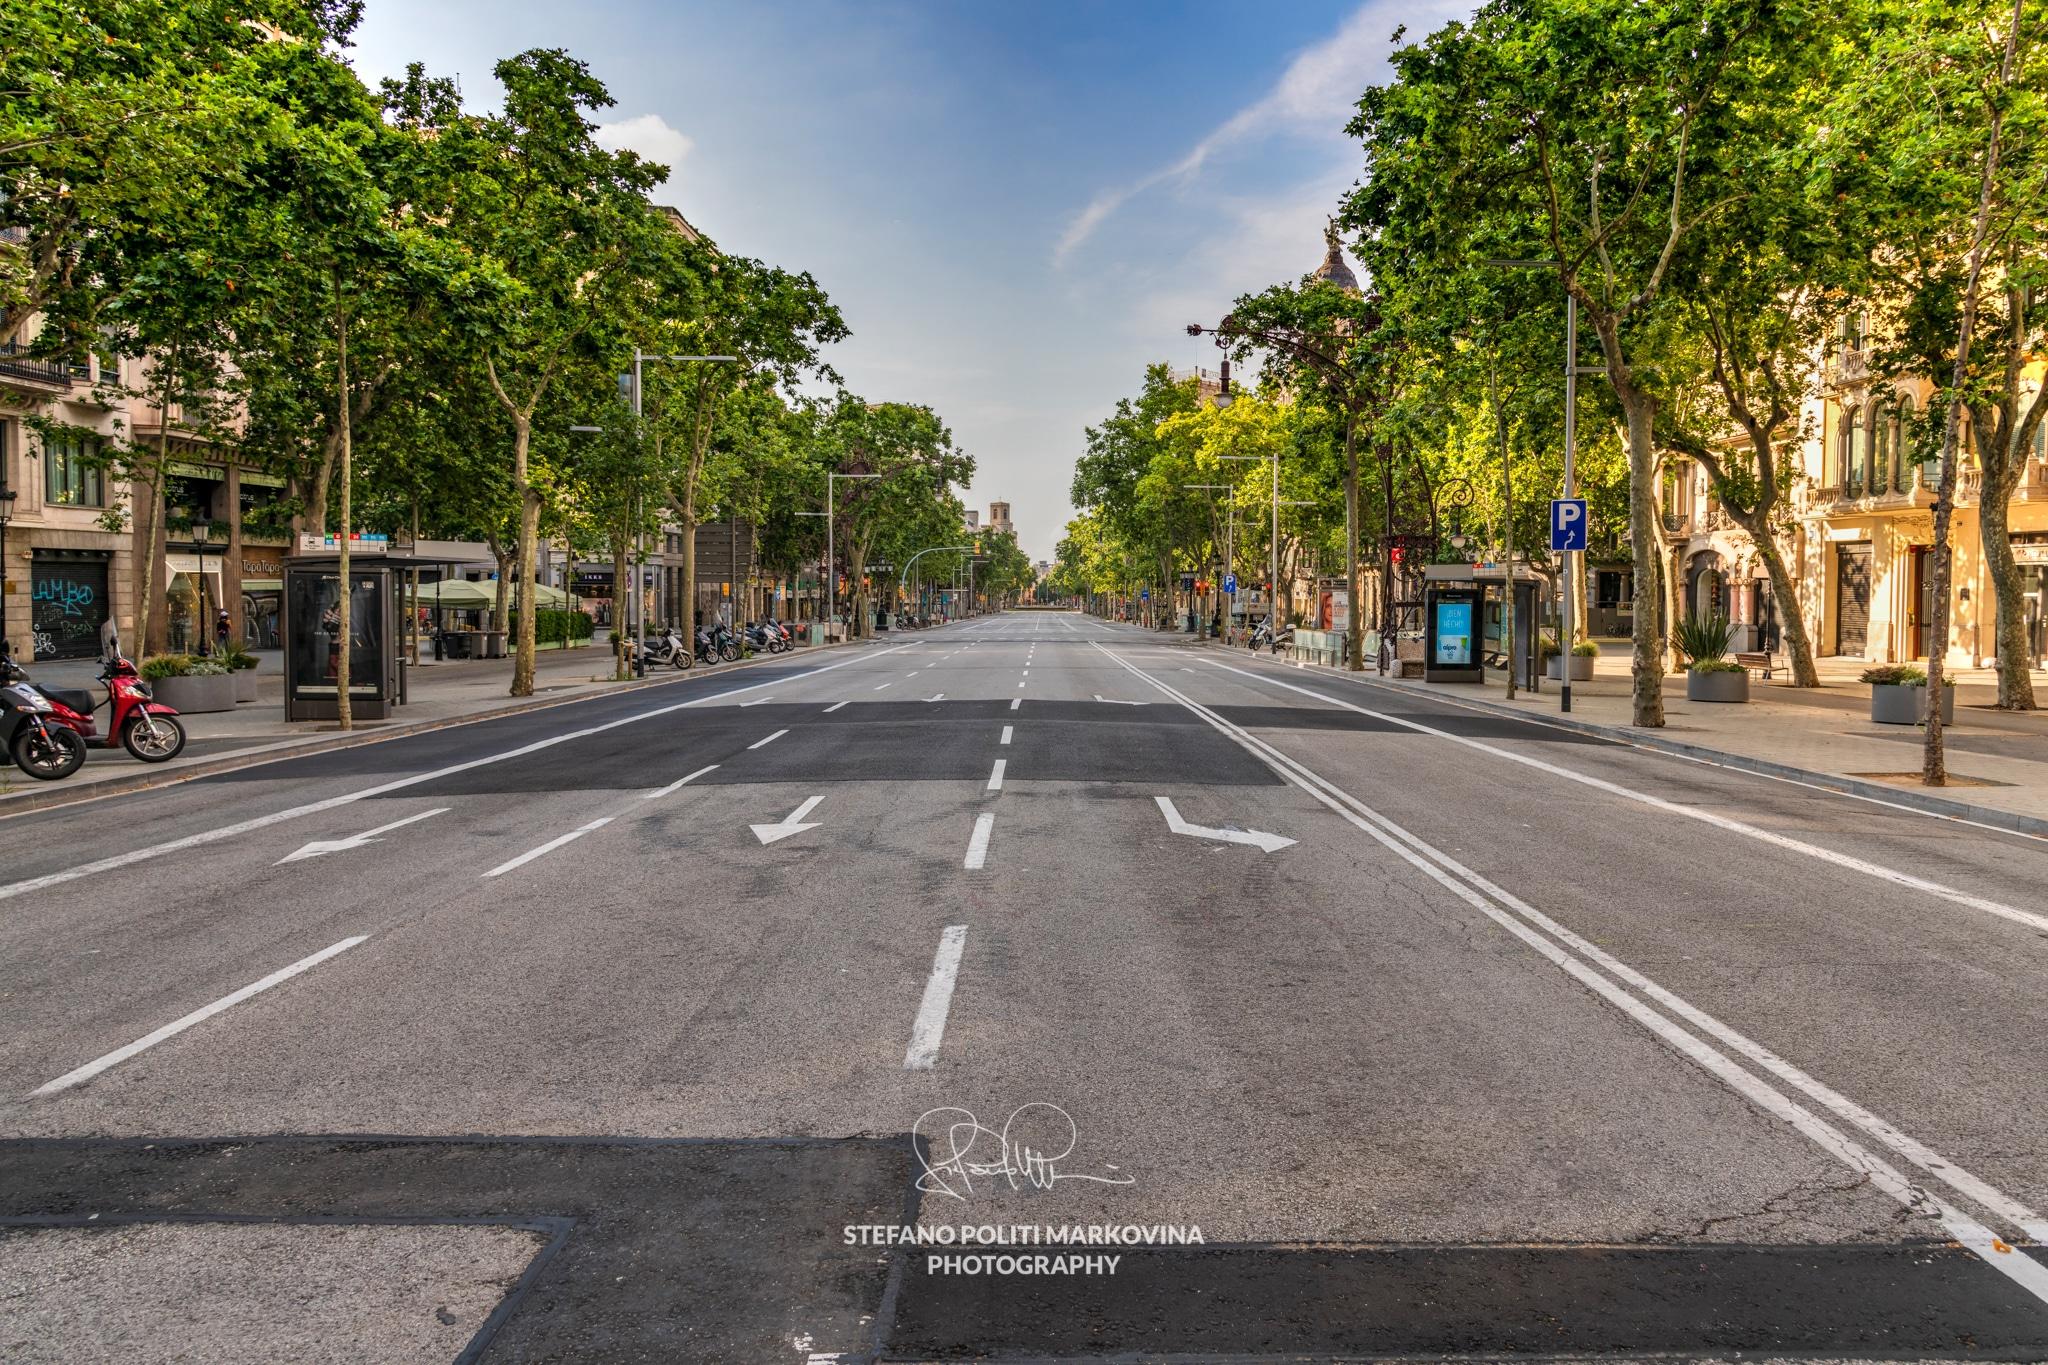 Passeig de Gracia avenue empty during the imposed lockdown due to covid-19 outbreak, Barcelona, Spain